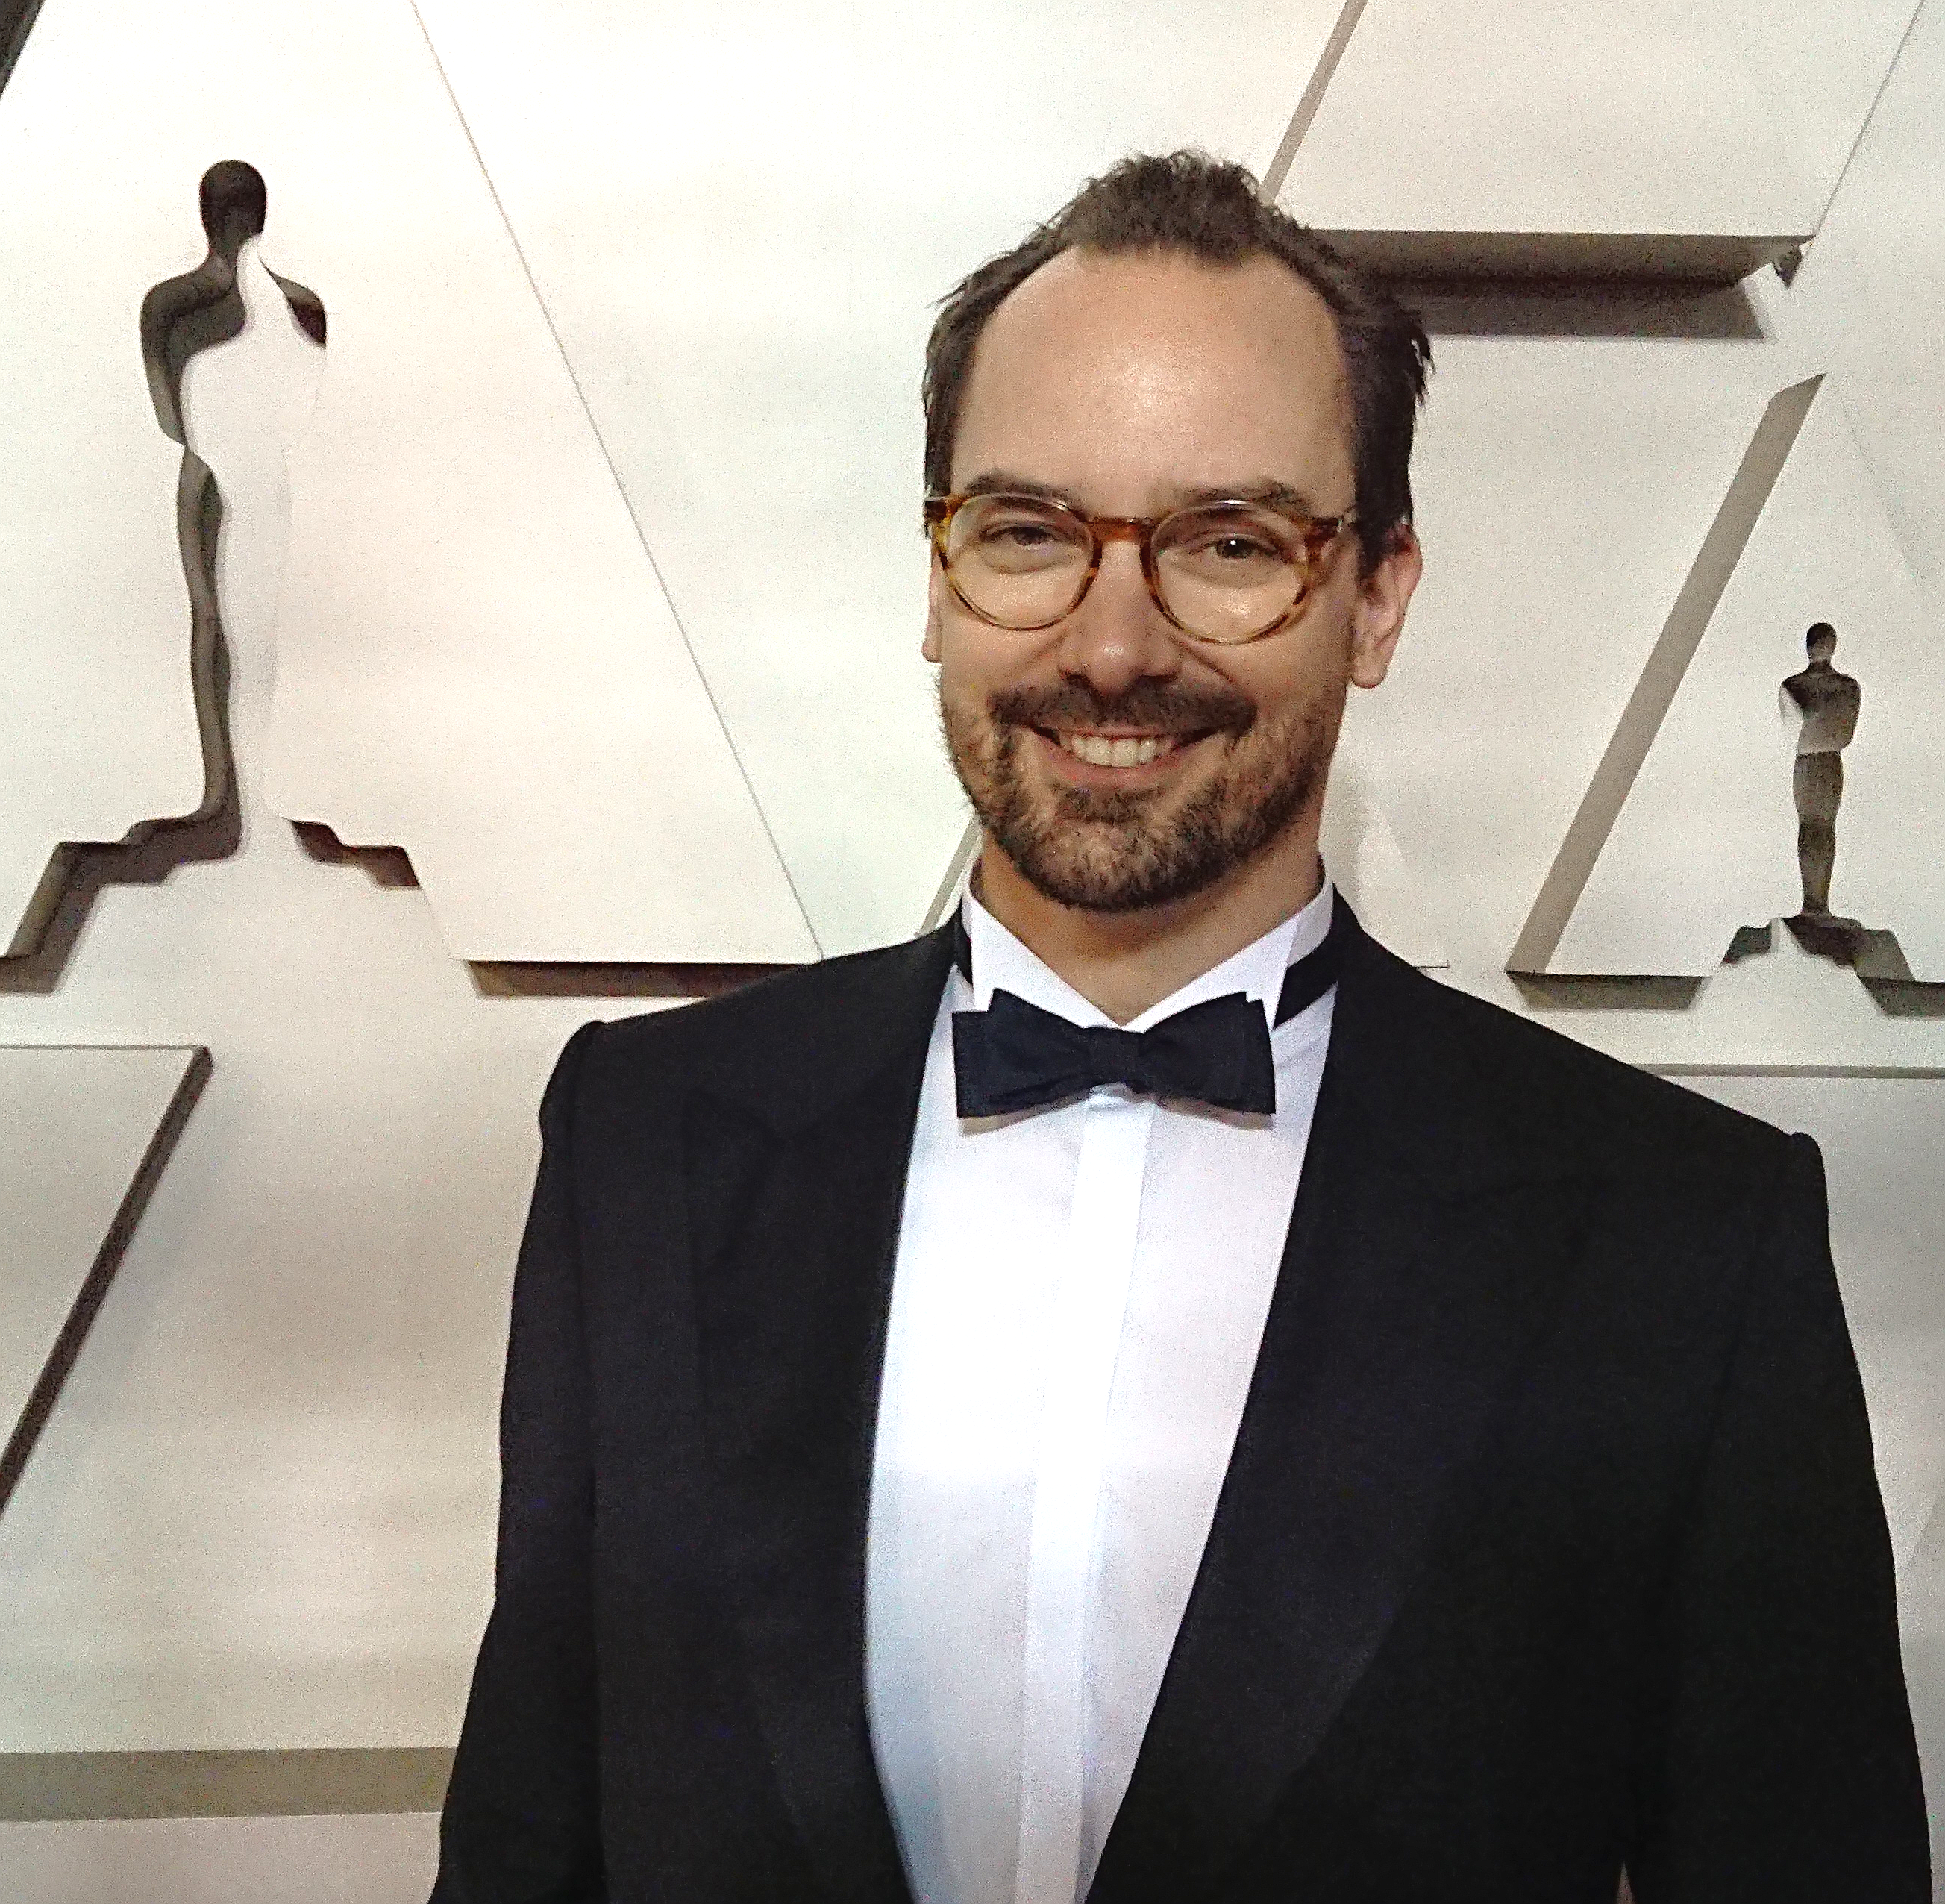 Carsten-Pieter at The Oscars